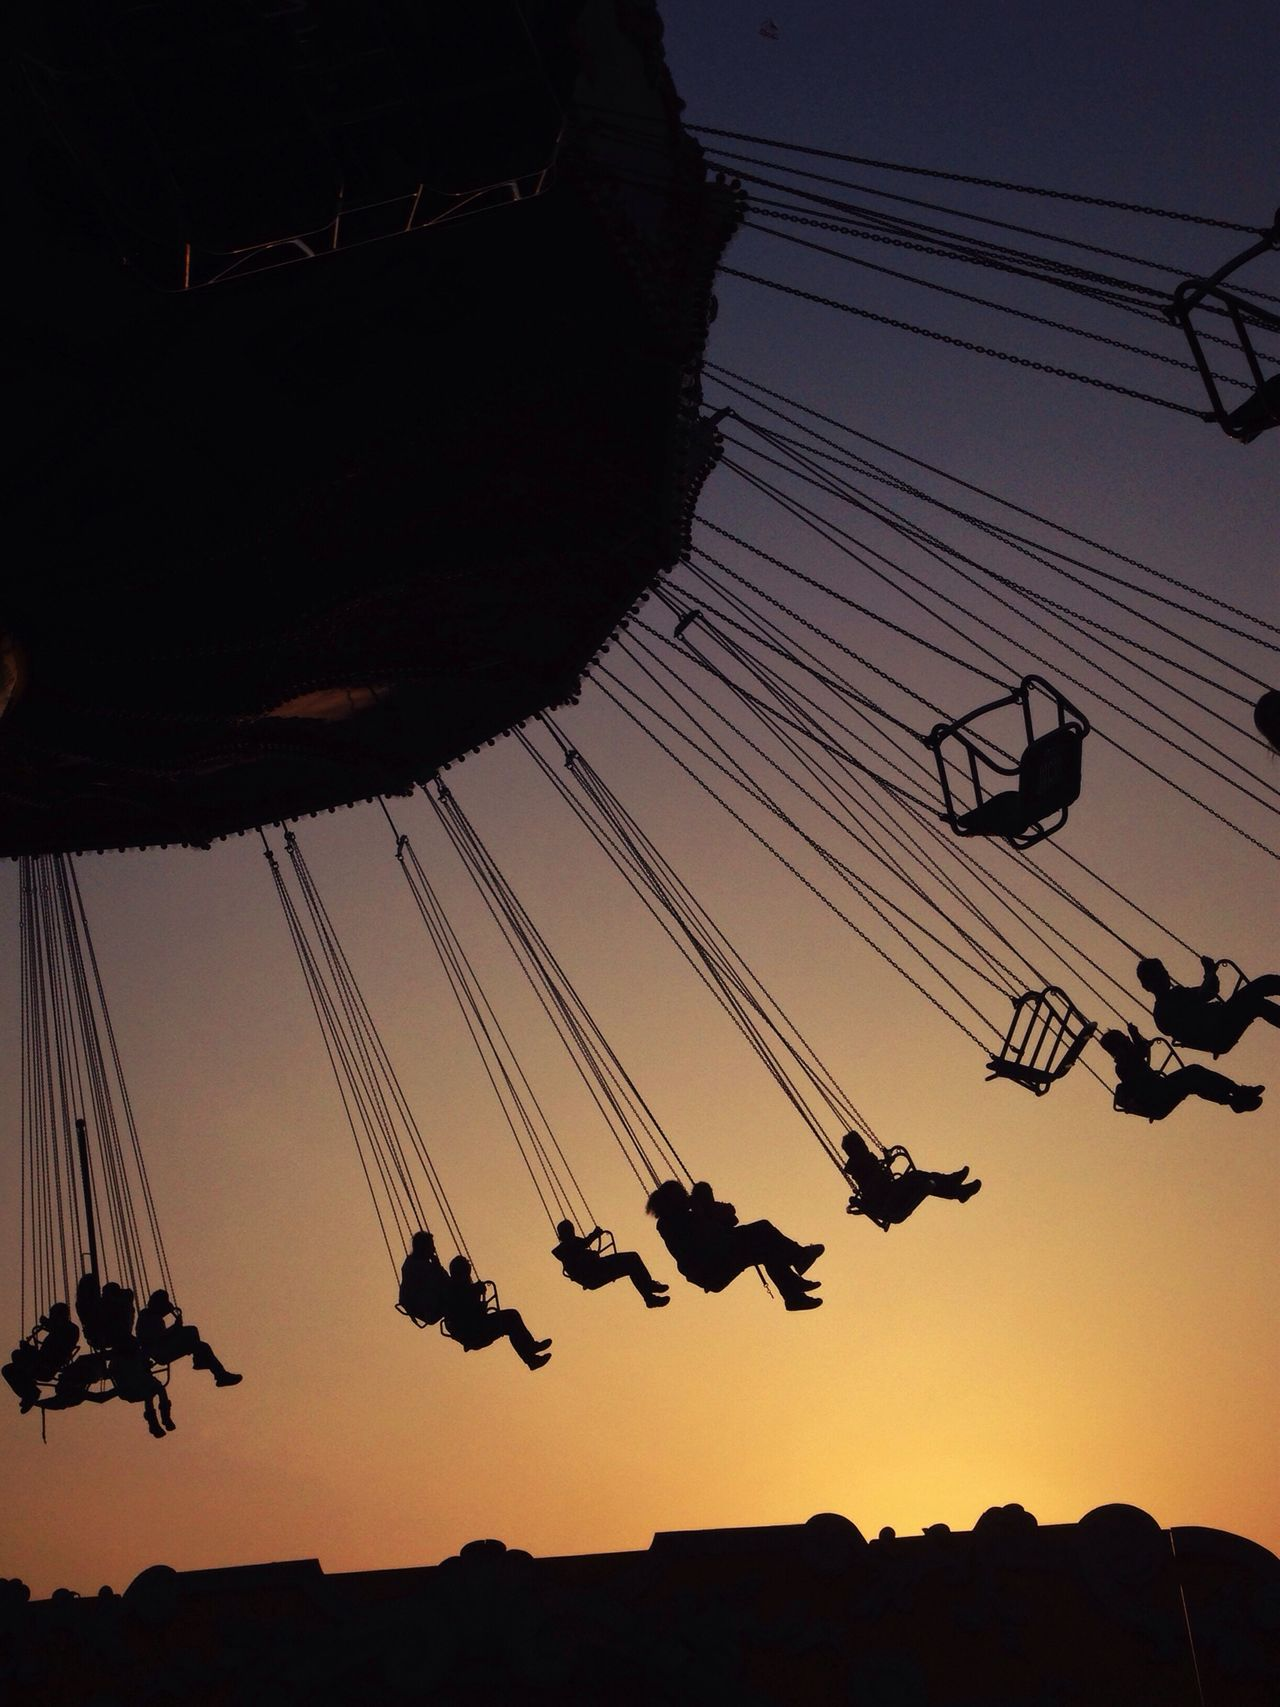 Low angle view of silhouette swing ride against clear sky